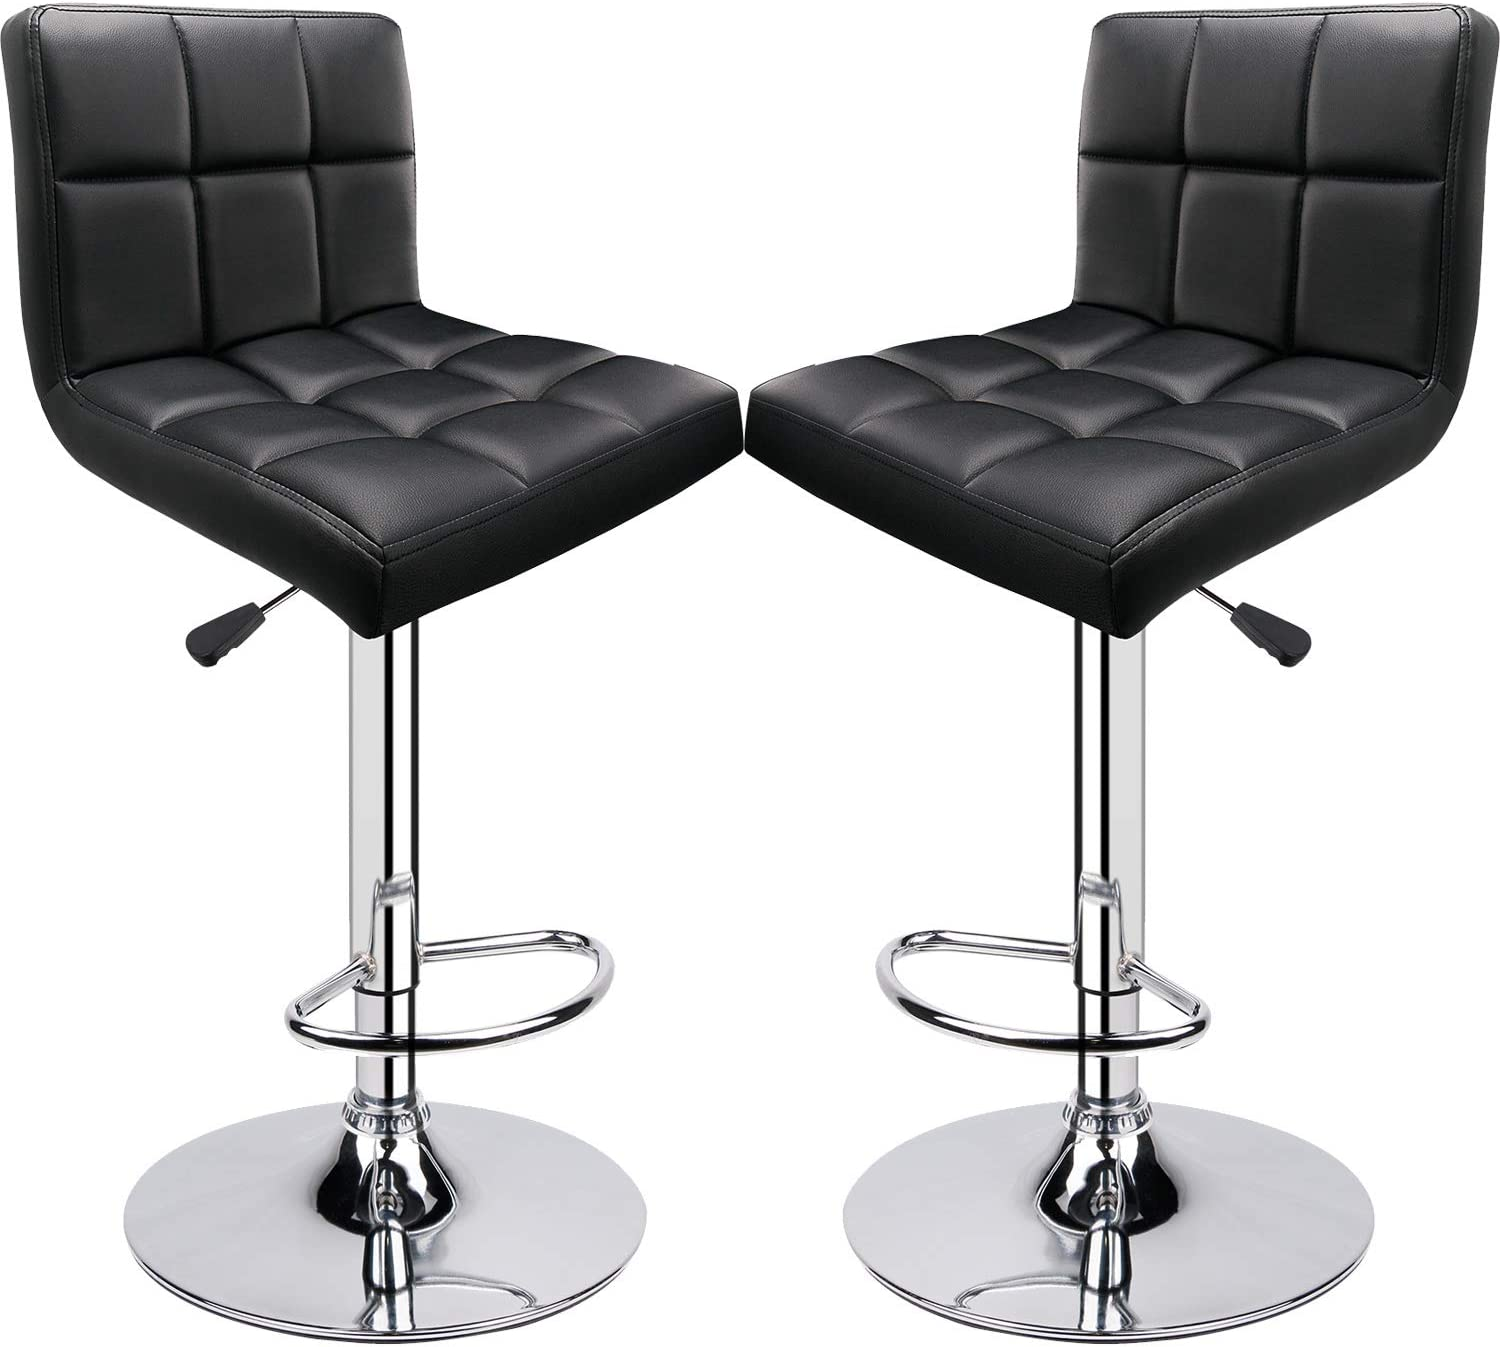 Bar Stools Limited price Set of 2 Back Adjustable Minneapolis Mall with Square